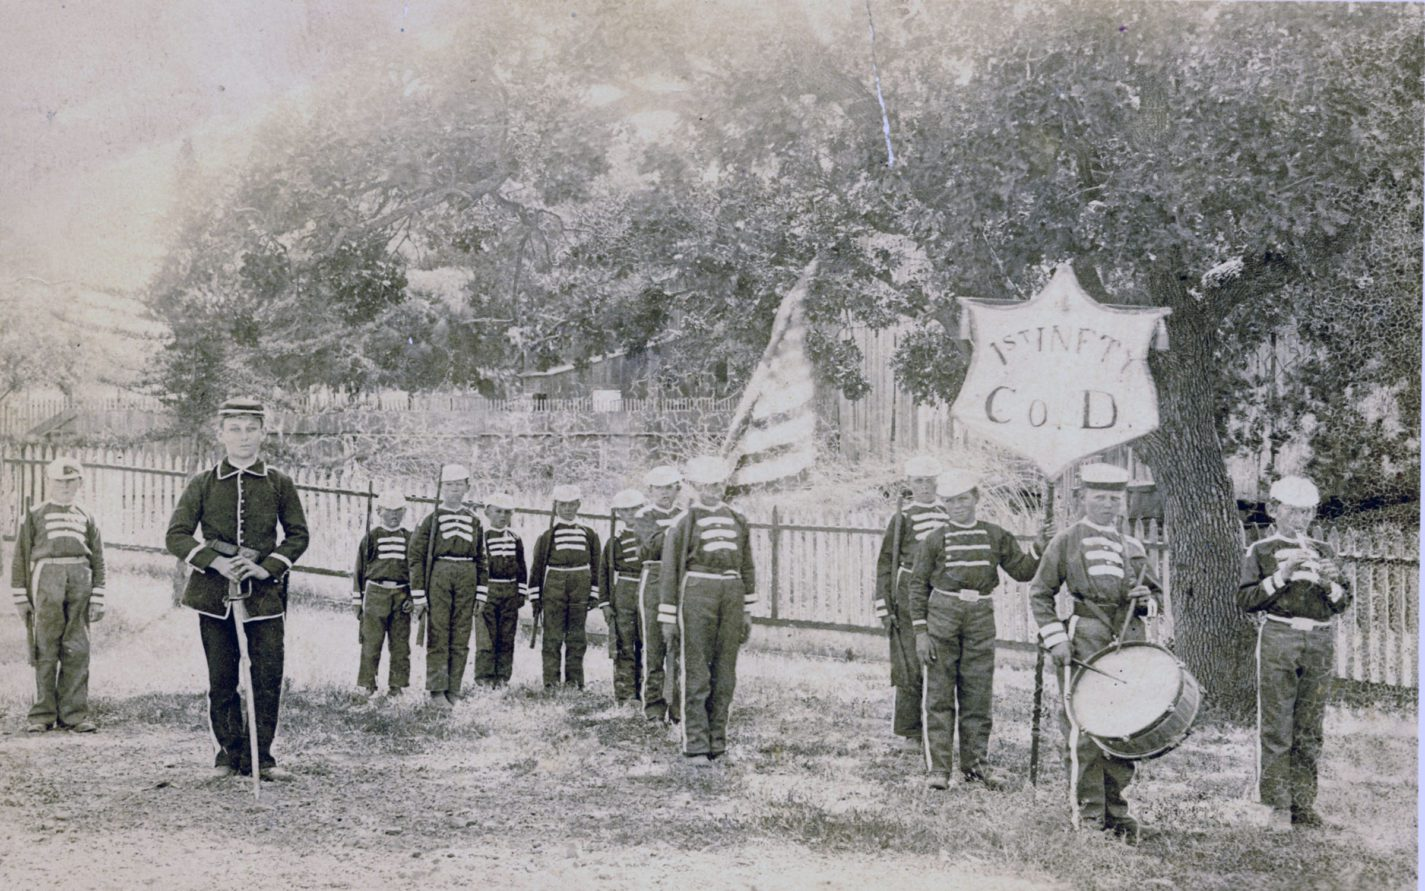 Young boys dressed in uniforms with toy rifle, fife and drum from the First Infantry Company D circa 1880s